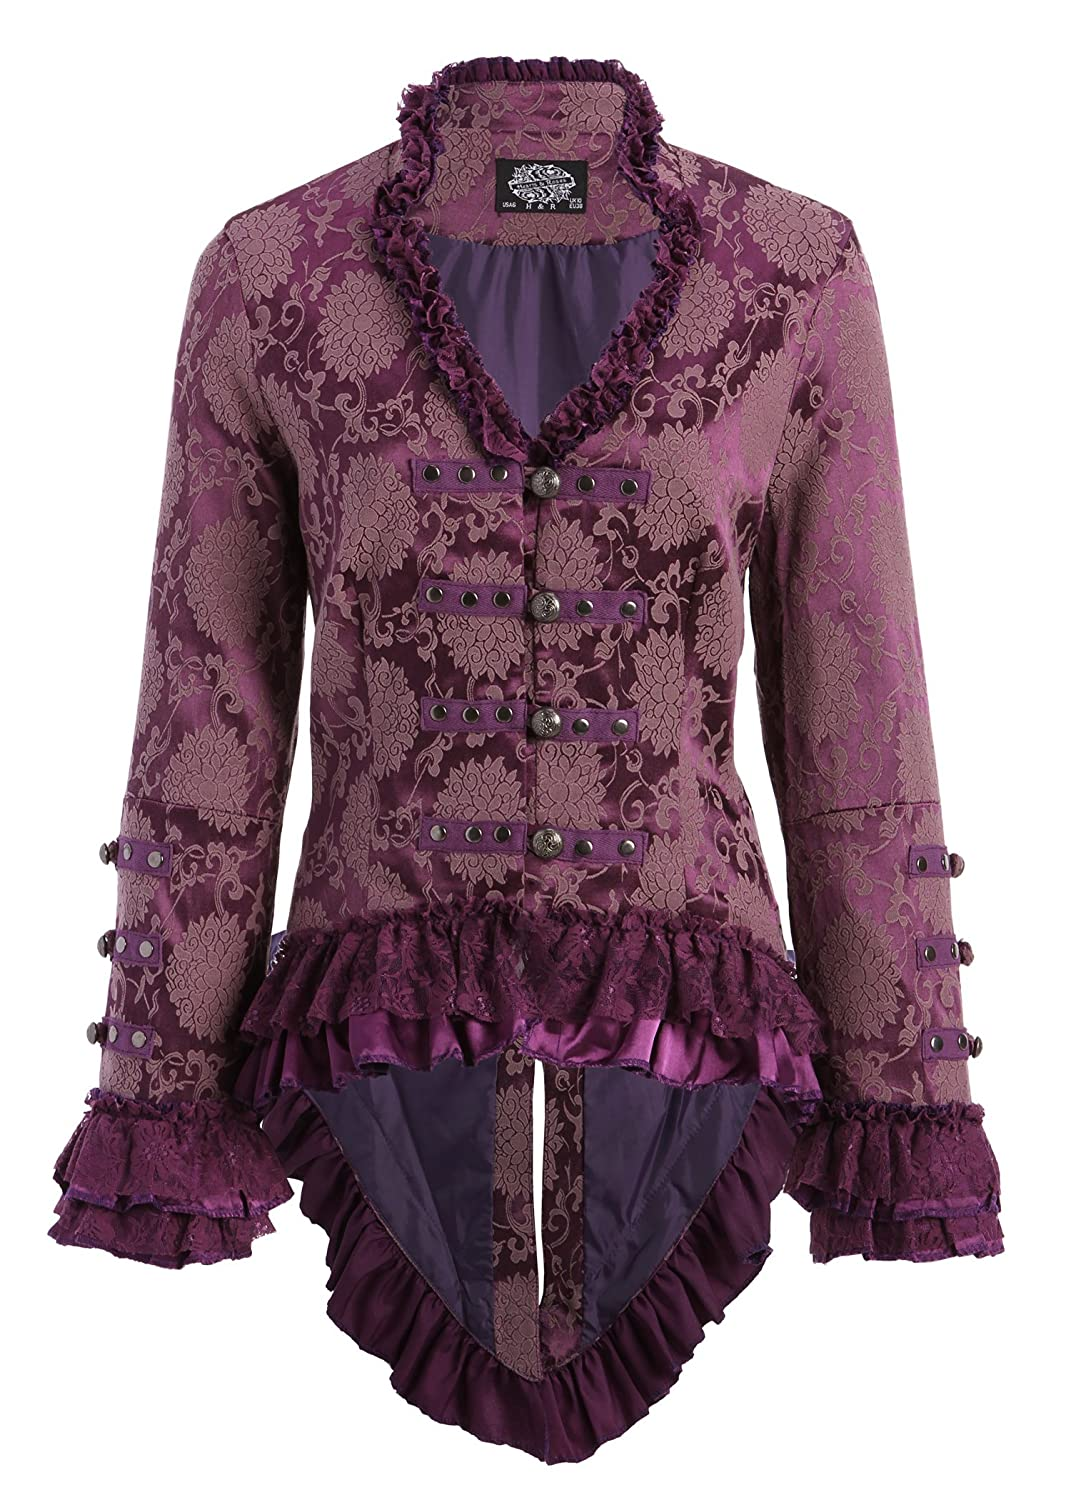 Steampunk Jacket | Steampunk Coat, Overcoat, Cape Elegant Purple Victorian Tail Jacket with Lace Embellishments $59.90 AT vintagedancer.com